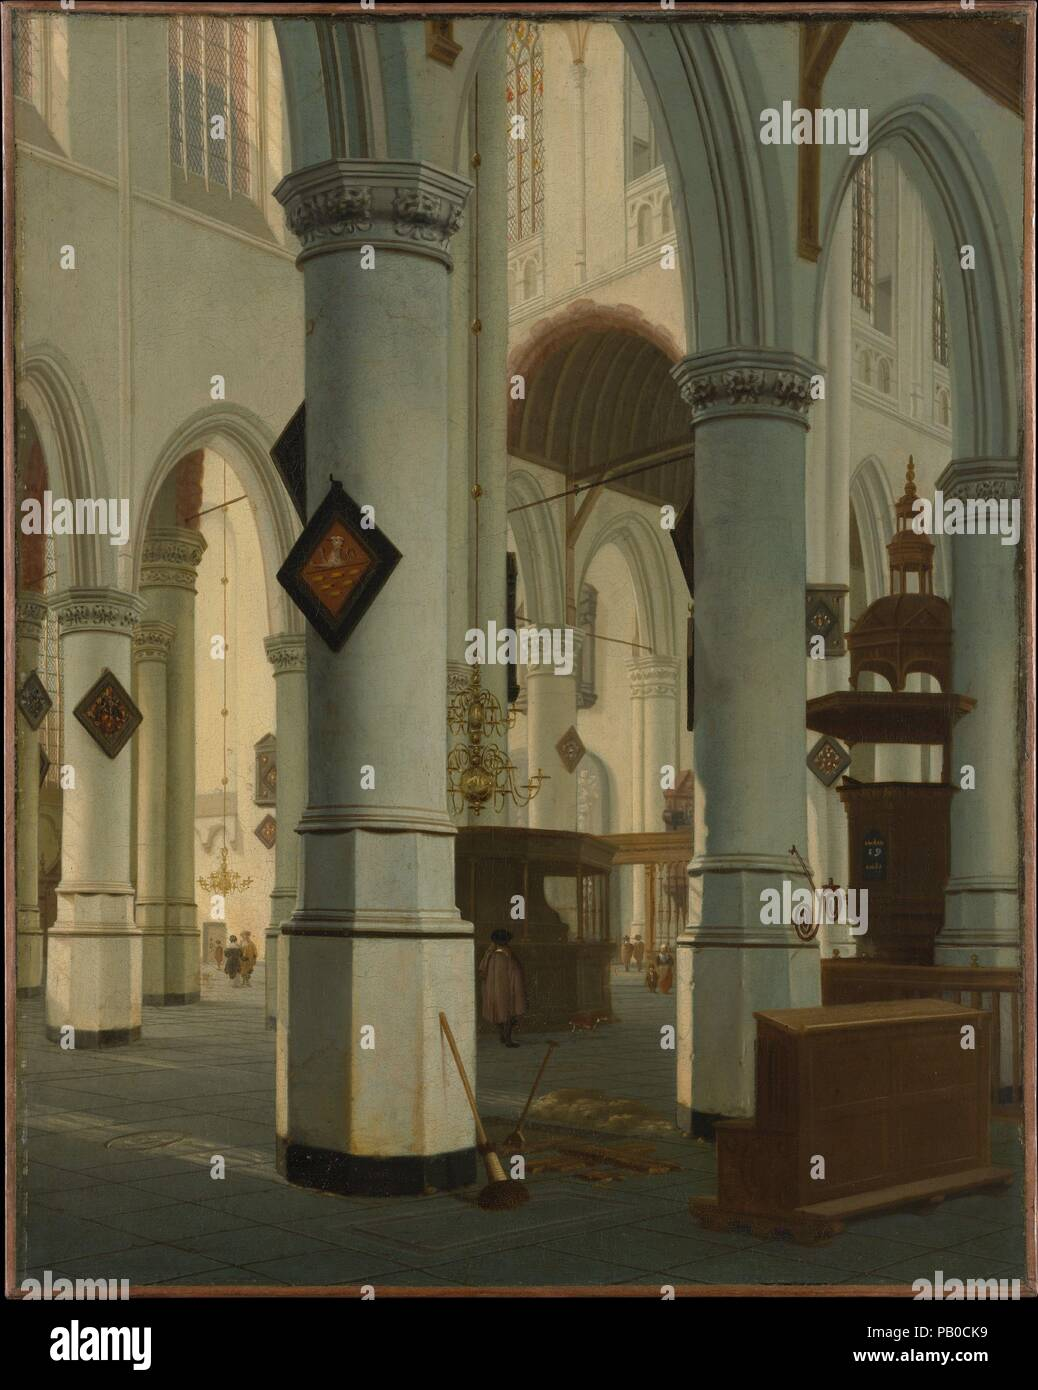 https://c8.alamy.com/comp/PB0CK9/interior-of-the-oude-kerk-delft-artist-hendrick-van-vliet-dutch-delft-161112-1675-delft-dimensions-32-12-x-26-in-826-x-66-cm-date-1660-van-vliet-was-one-of-several-artists-in-delft-who-specialized-in-the-depiction-of-church-interiors-in-this-painting-he-portrayed-the-oude-kerk-from-one-of-the-side-aisles-looking-past-the-crossing-to-the-northeast-an-oblique-angle-which-emphasizes-the-complexity-of-the-space-the-freshly-dug-tomb-in-the-foreground-may-have-been-intended-as-a-reminder-of-death-and-the-promise-of-everlasting-life-museum-metropolitan-museum-of-art-new-york-PB0CK9.jpg